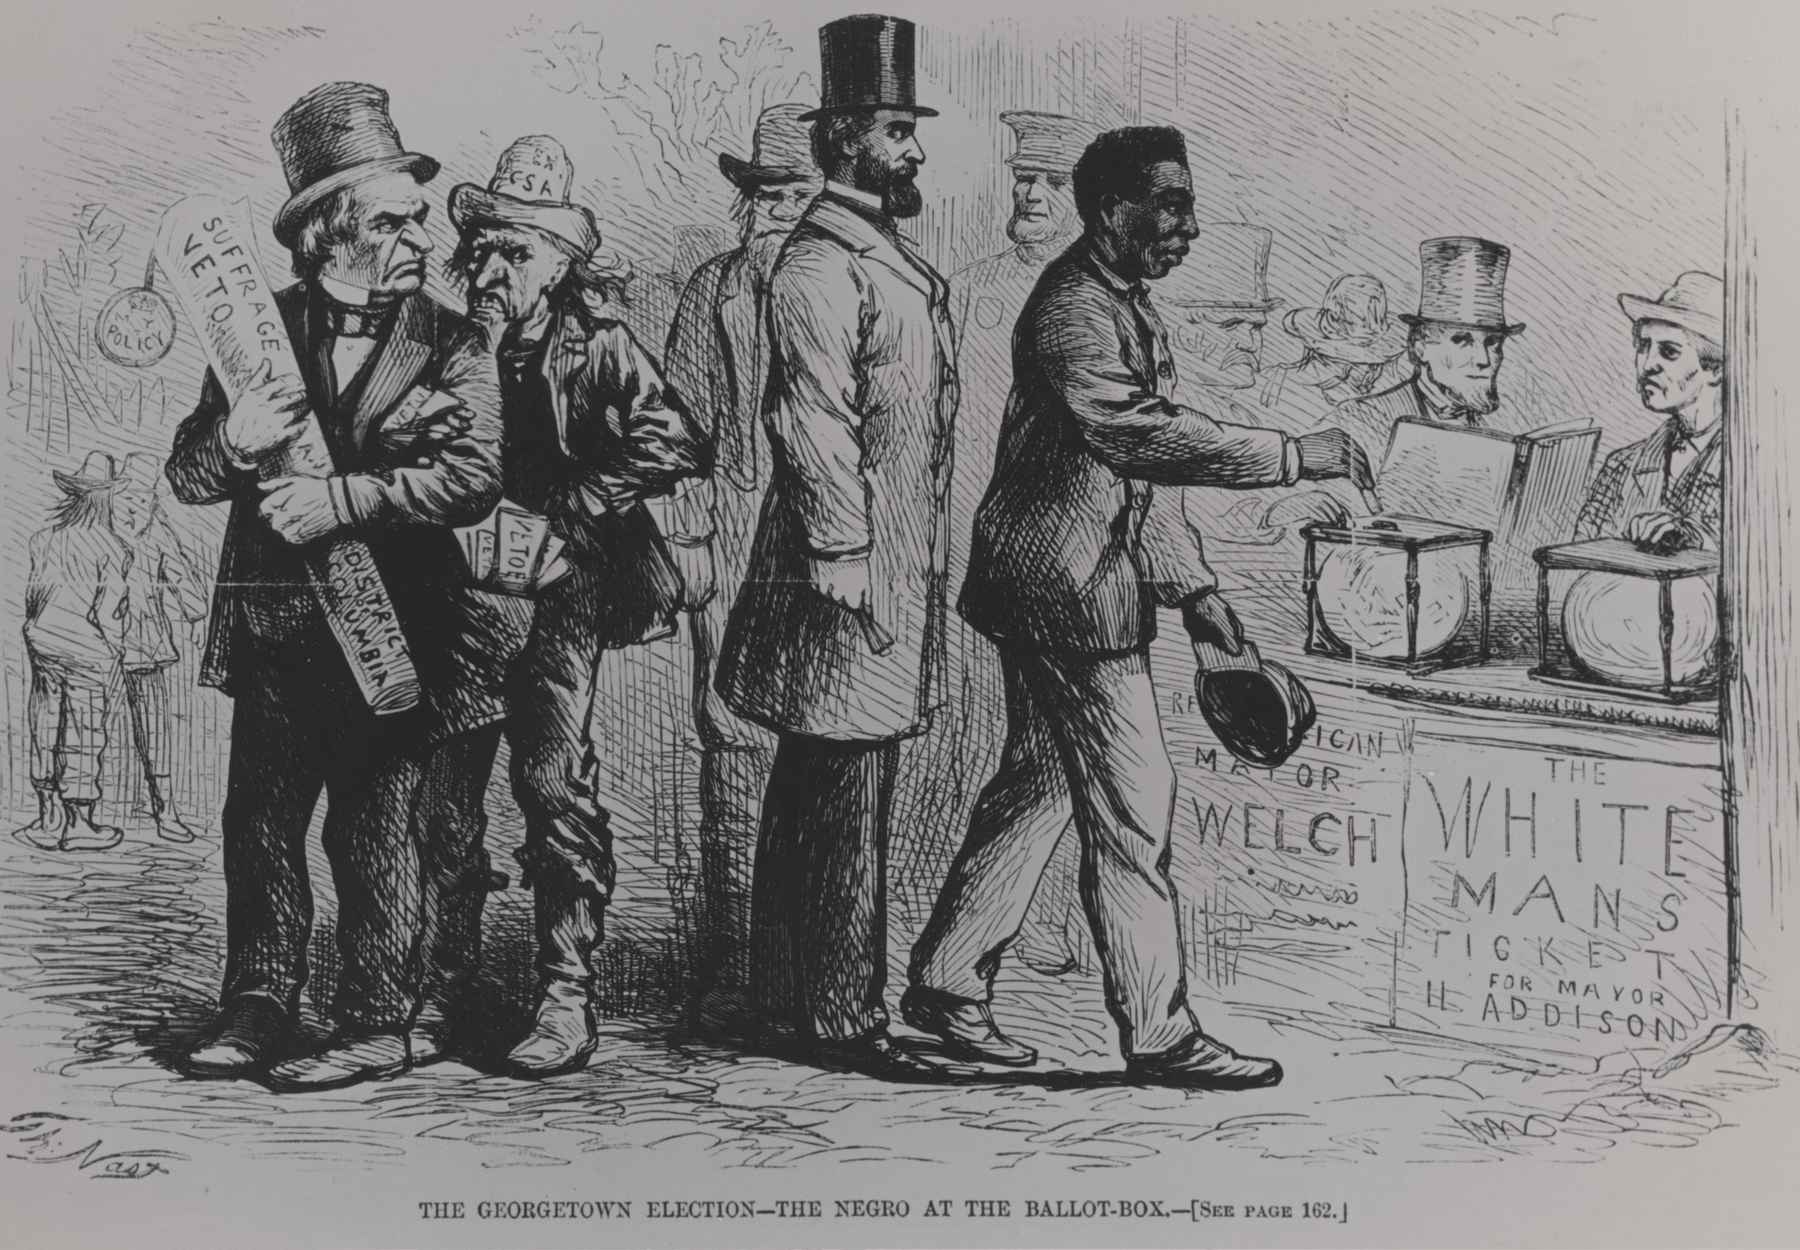 Political cartoon features an illustration of American